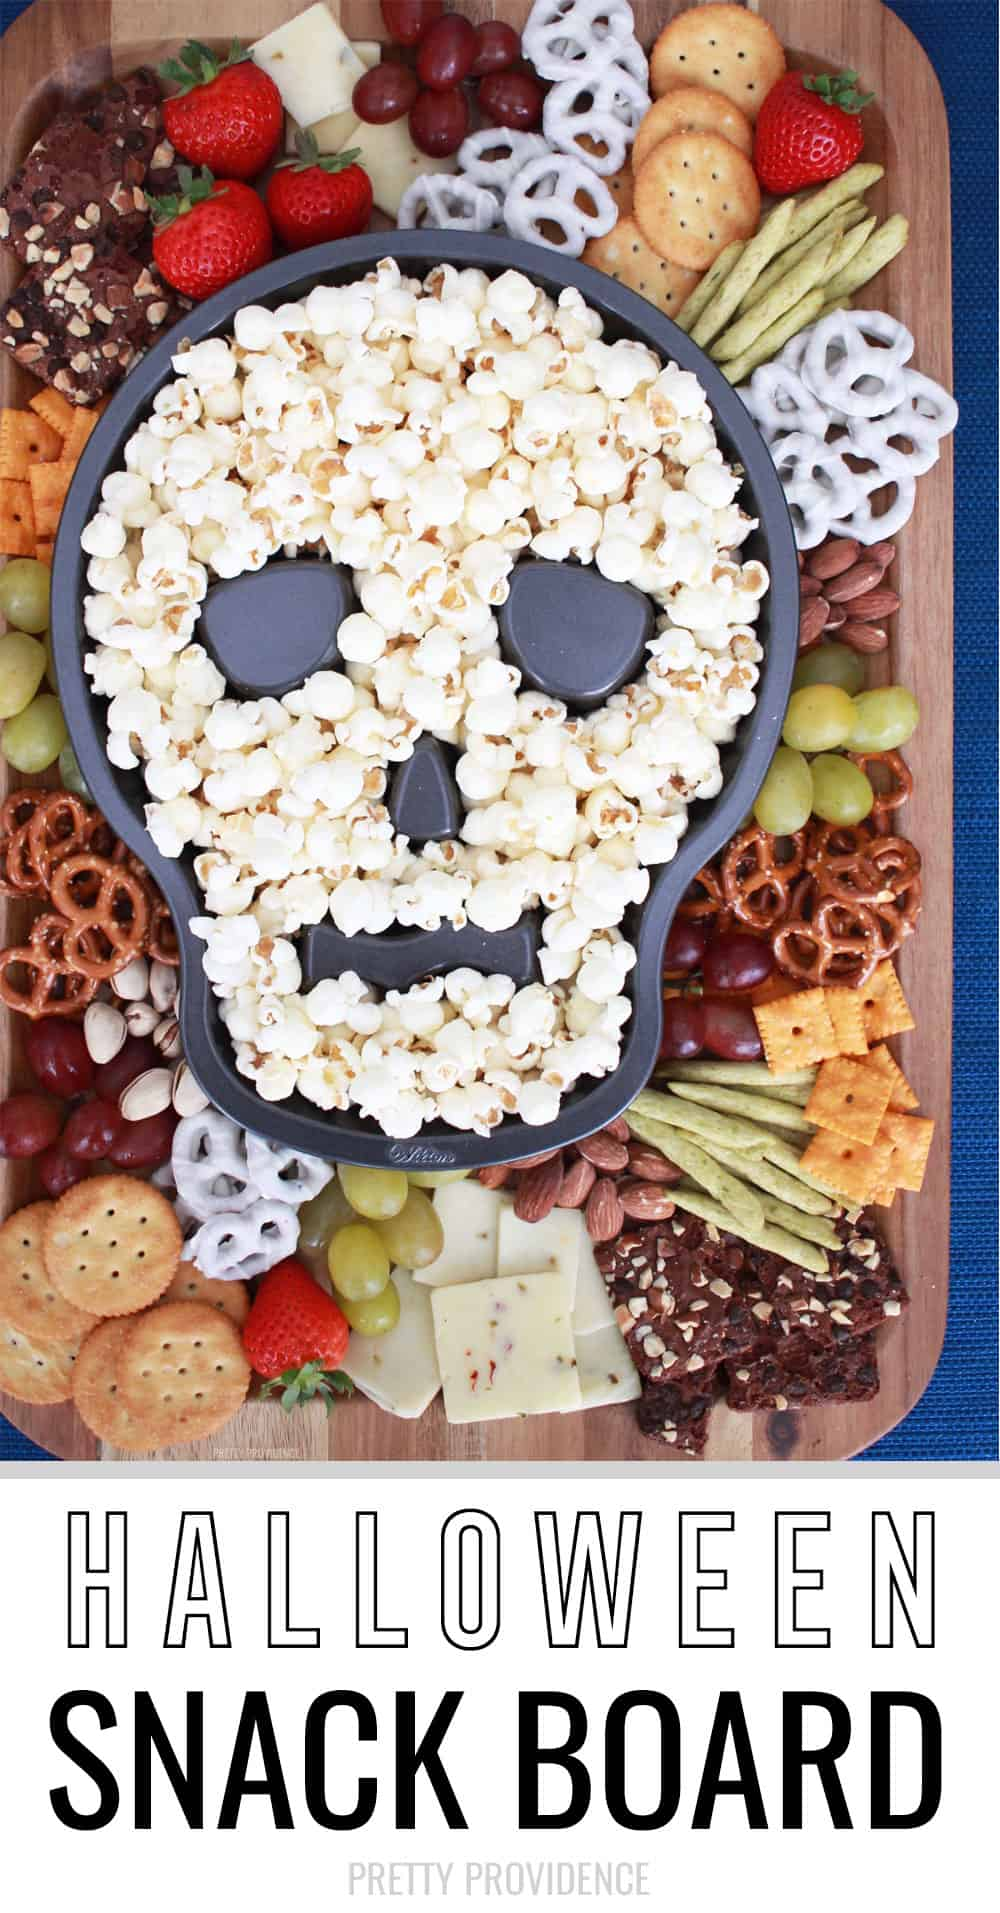 Halloween Snack Board - Perfect sweet and savory snack for a Halloween party!